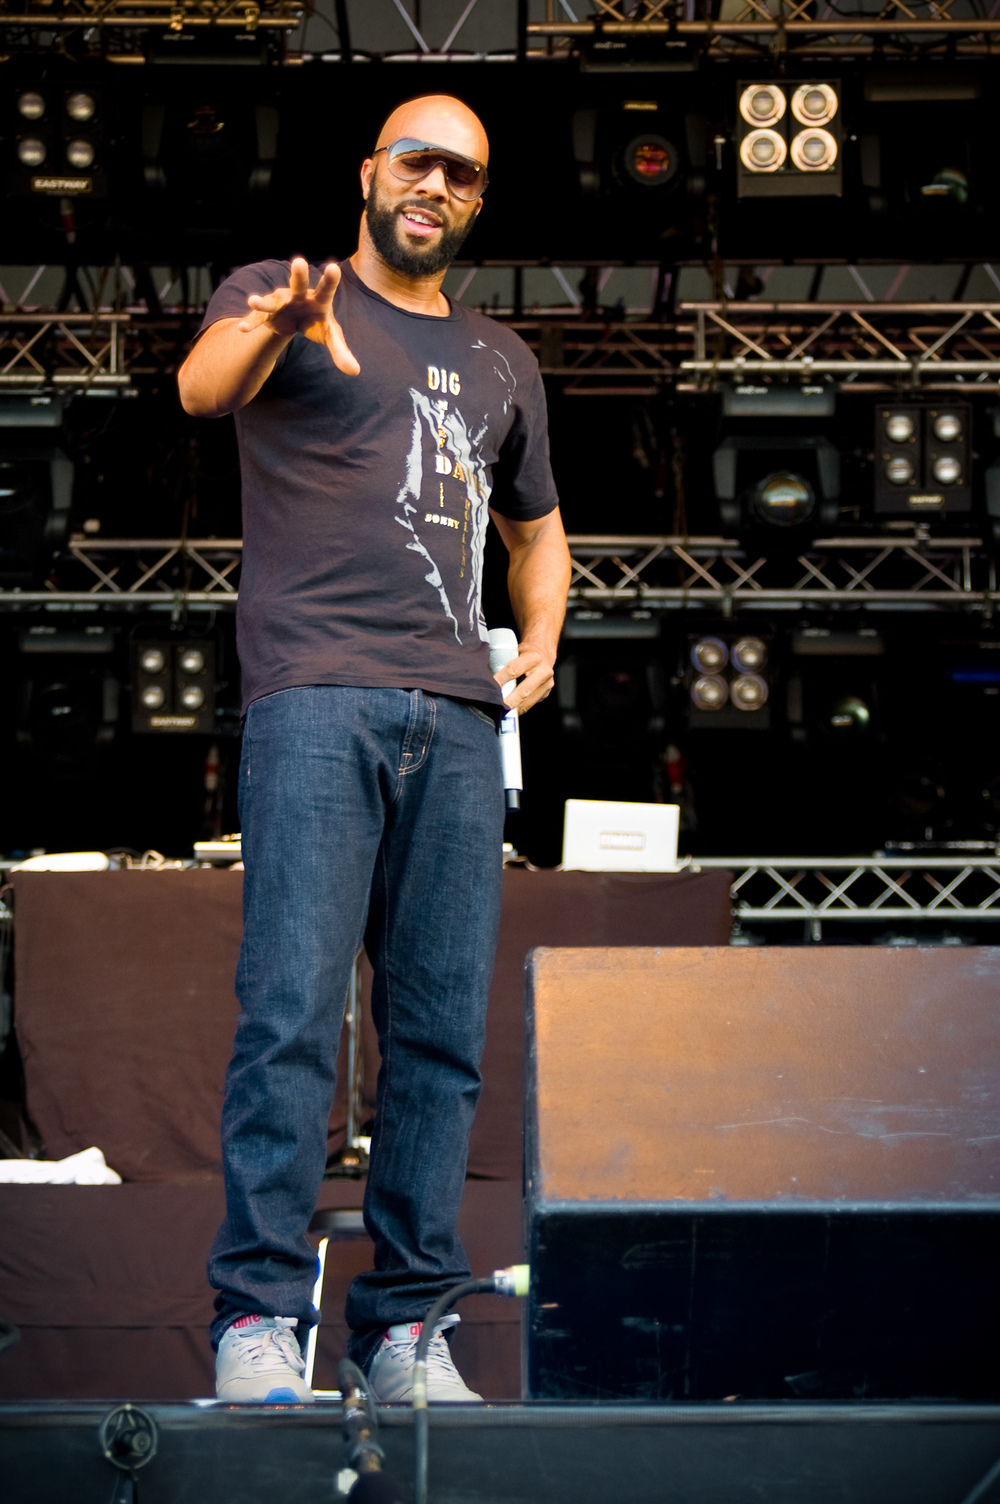 wikimedia.org    Rapper Common is one of the many hip hop artists who will be in attendance at Rock the Bells 2013 this weekend in Mountain View. Other acts include the Wu-Tang Clan, Bone Thugs-N-Harmony,  and Deltron 3030.